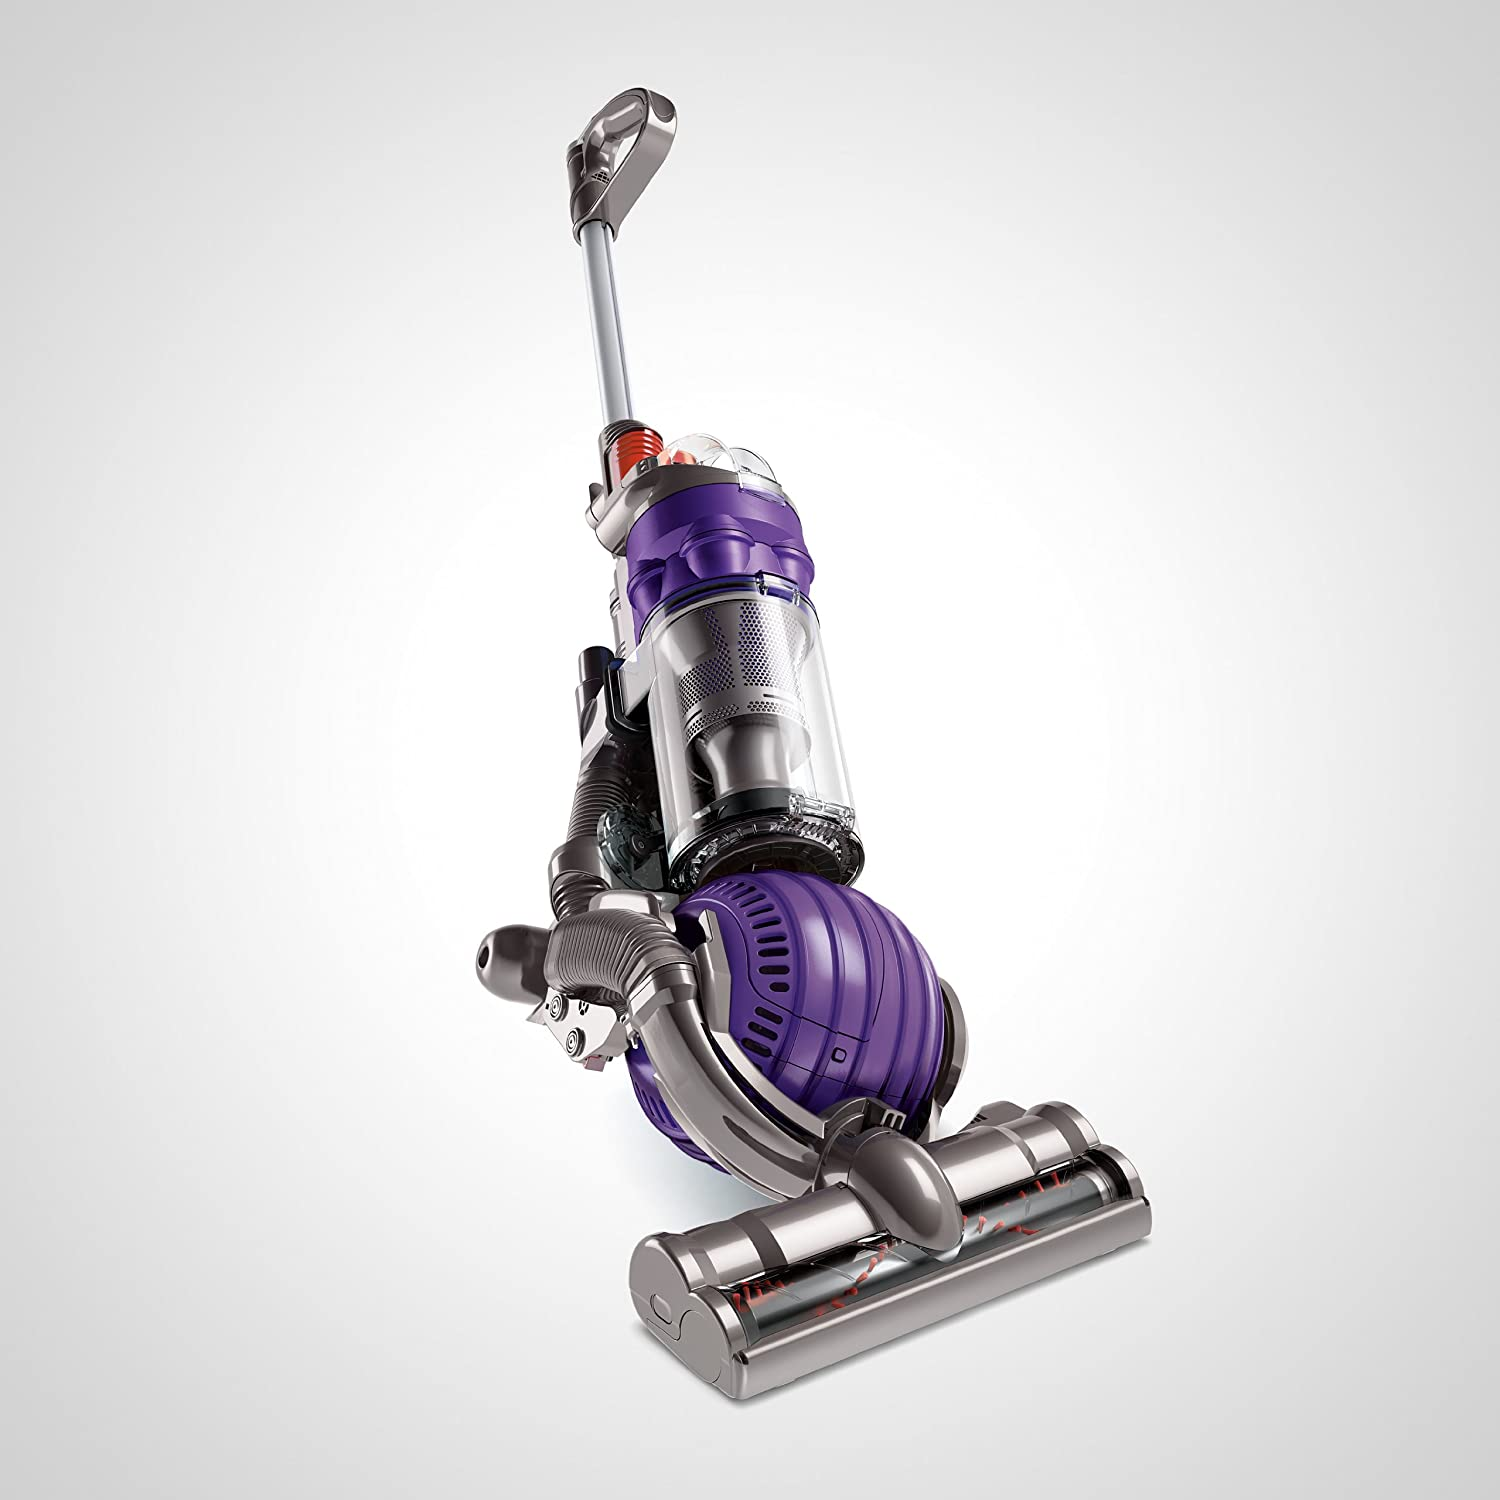 amazoncom dyson dc24 animal compact upright vacuum cleaner household upright vacuums